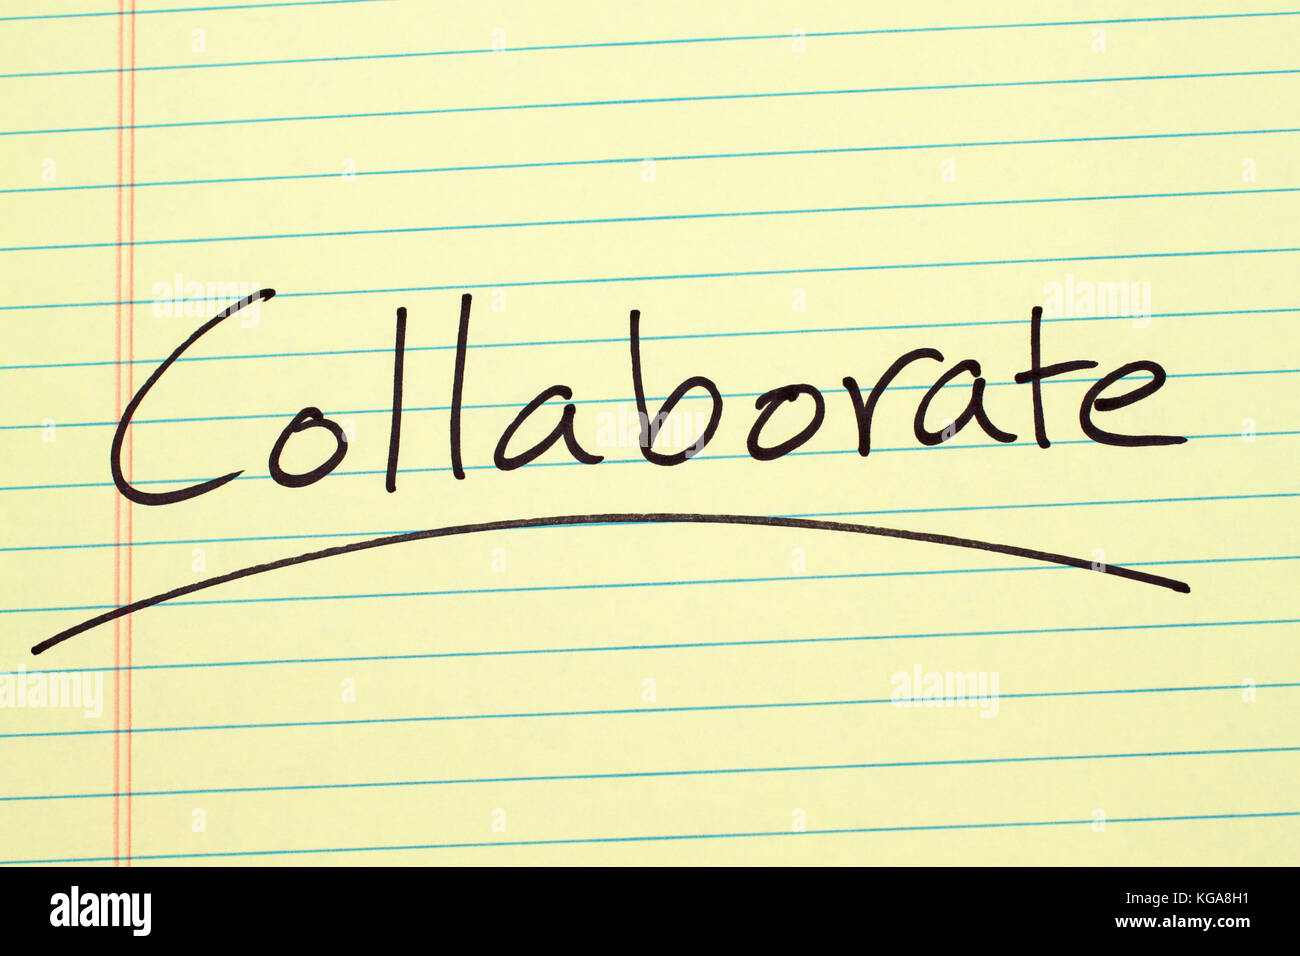 The word 'Collaborate' underlined on a yellow legal pad - Stock Image